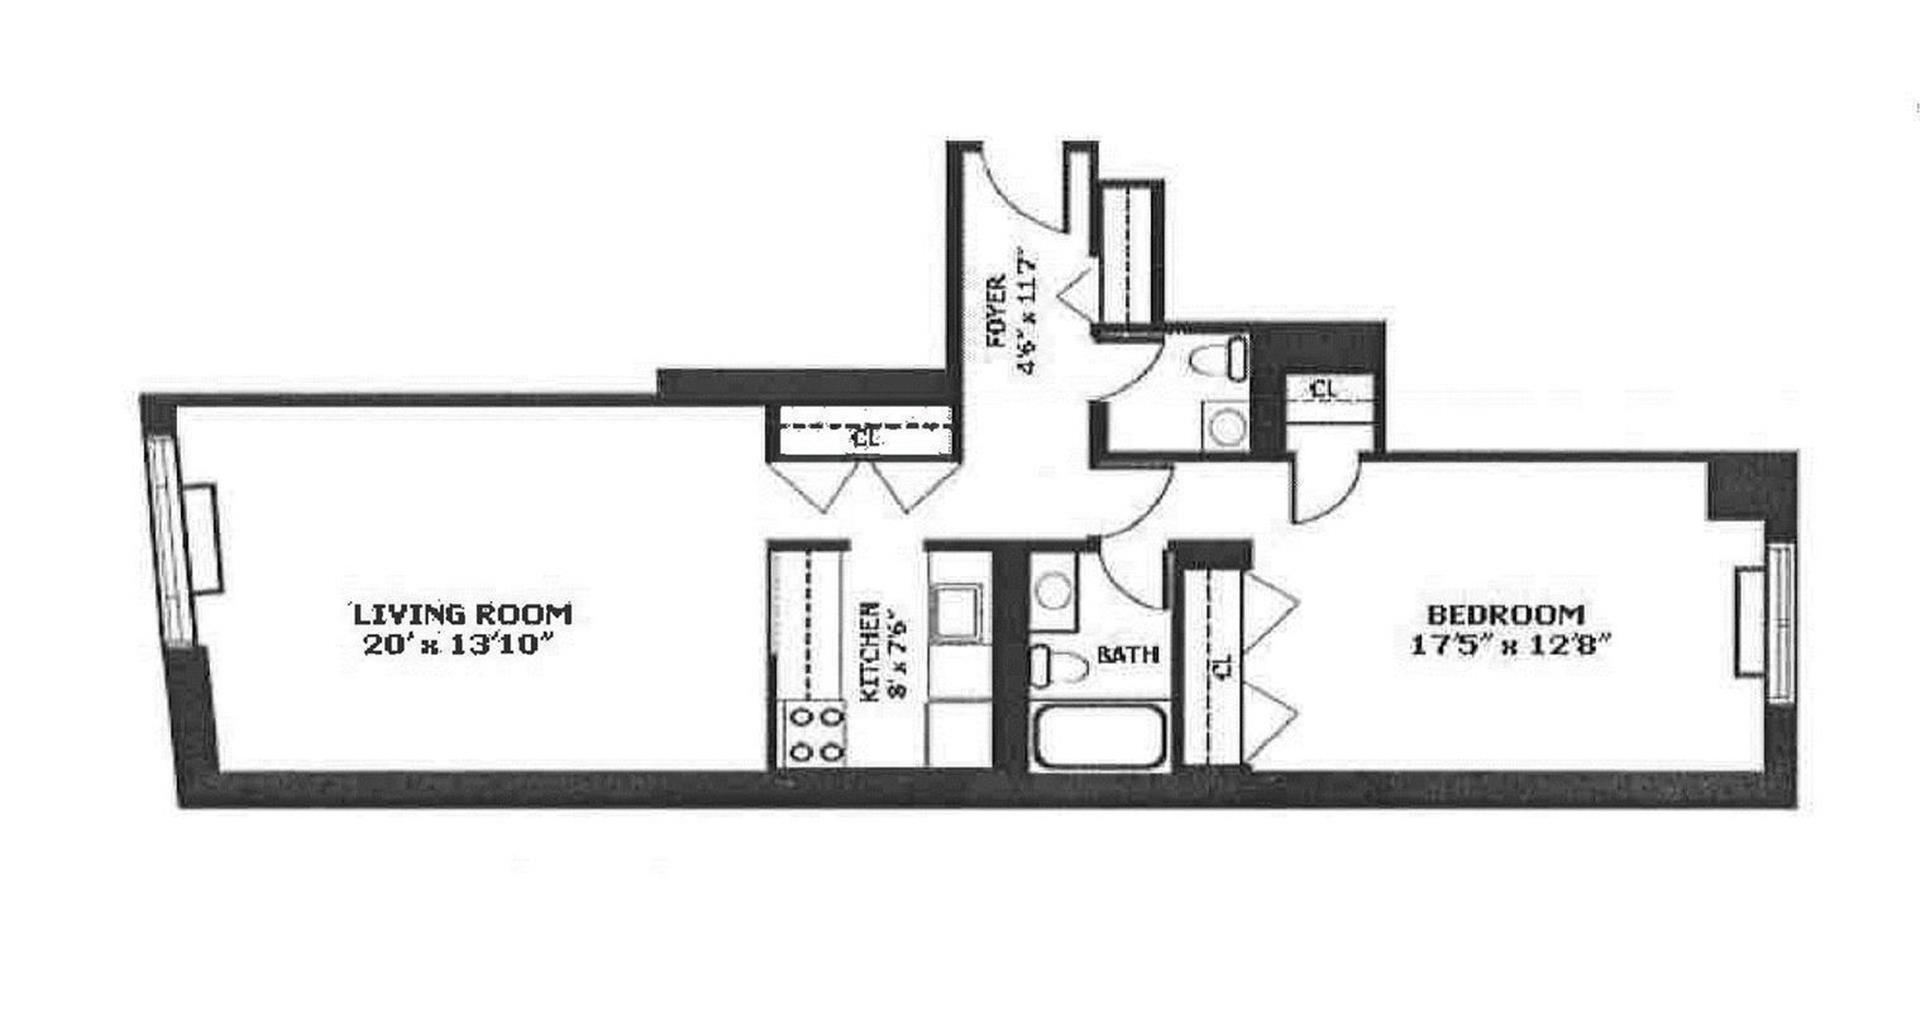 Floor plan of HUDSON TOWER, 350 Albany St, 5A - Battery Park City, New York